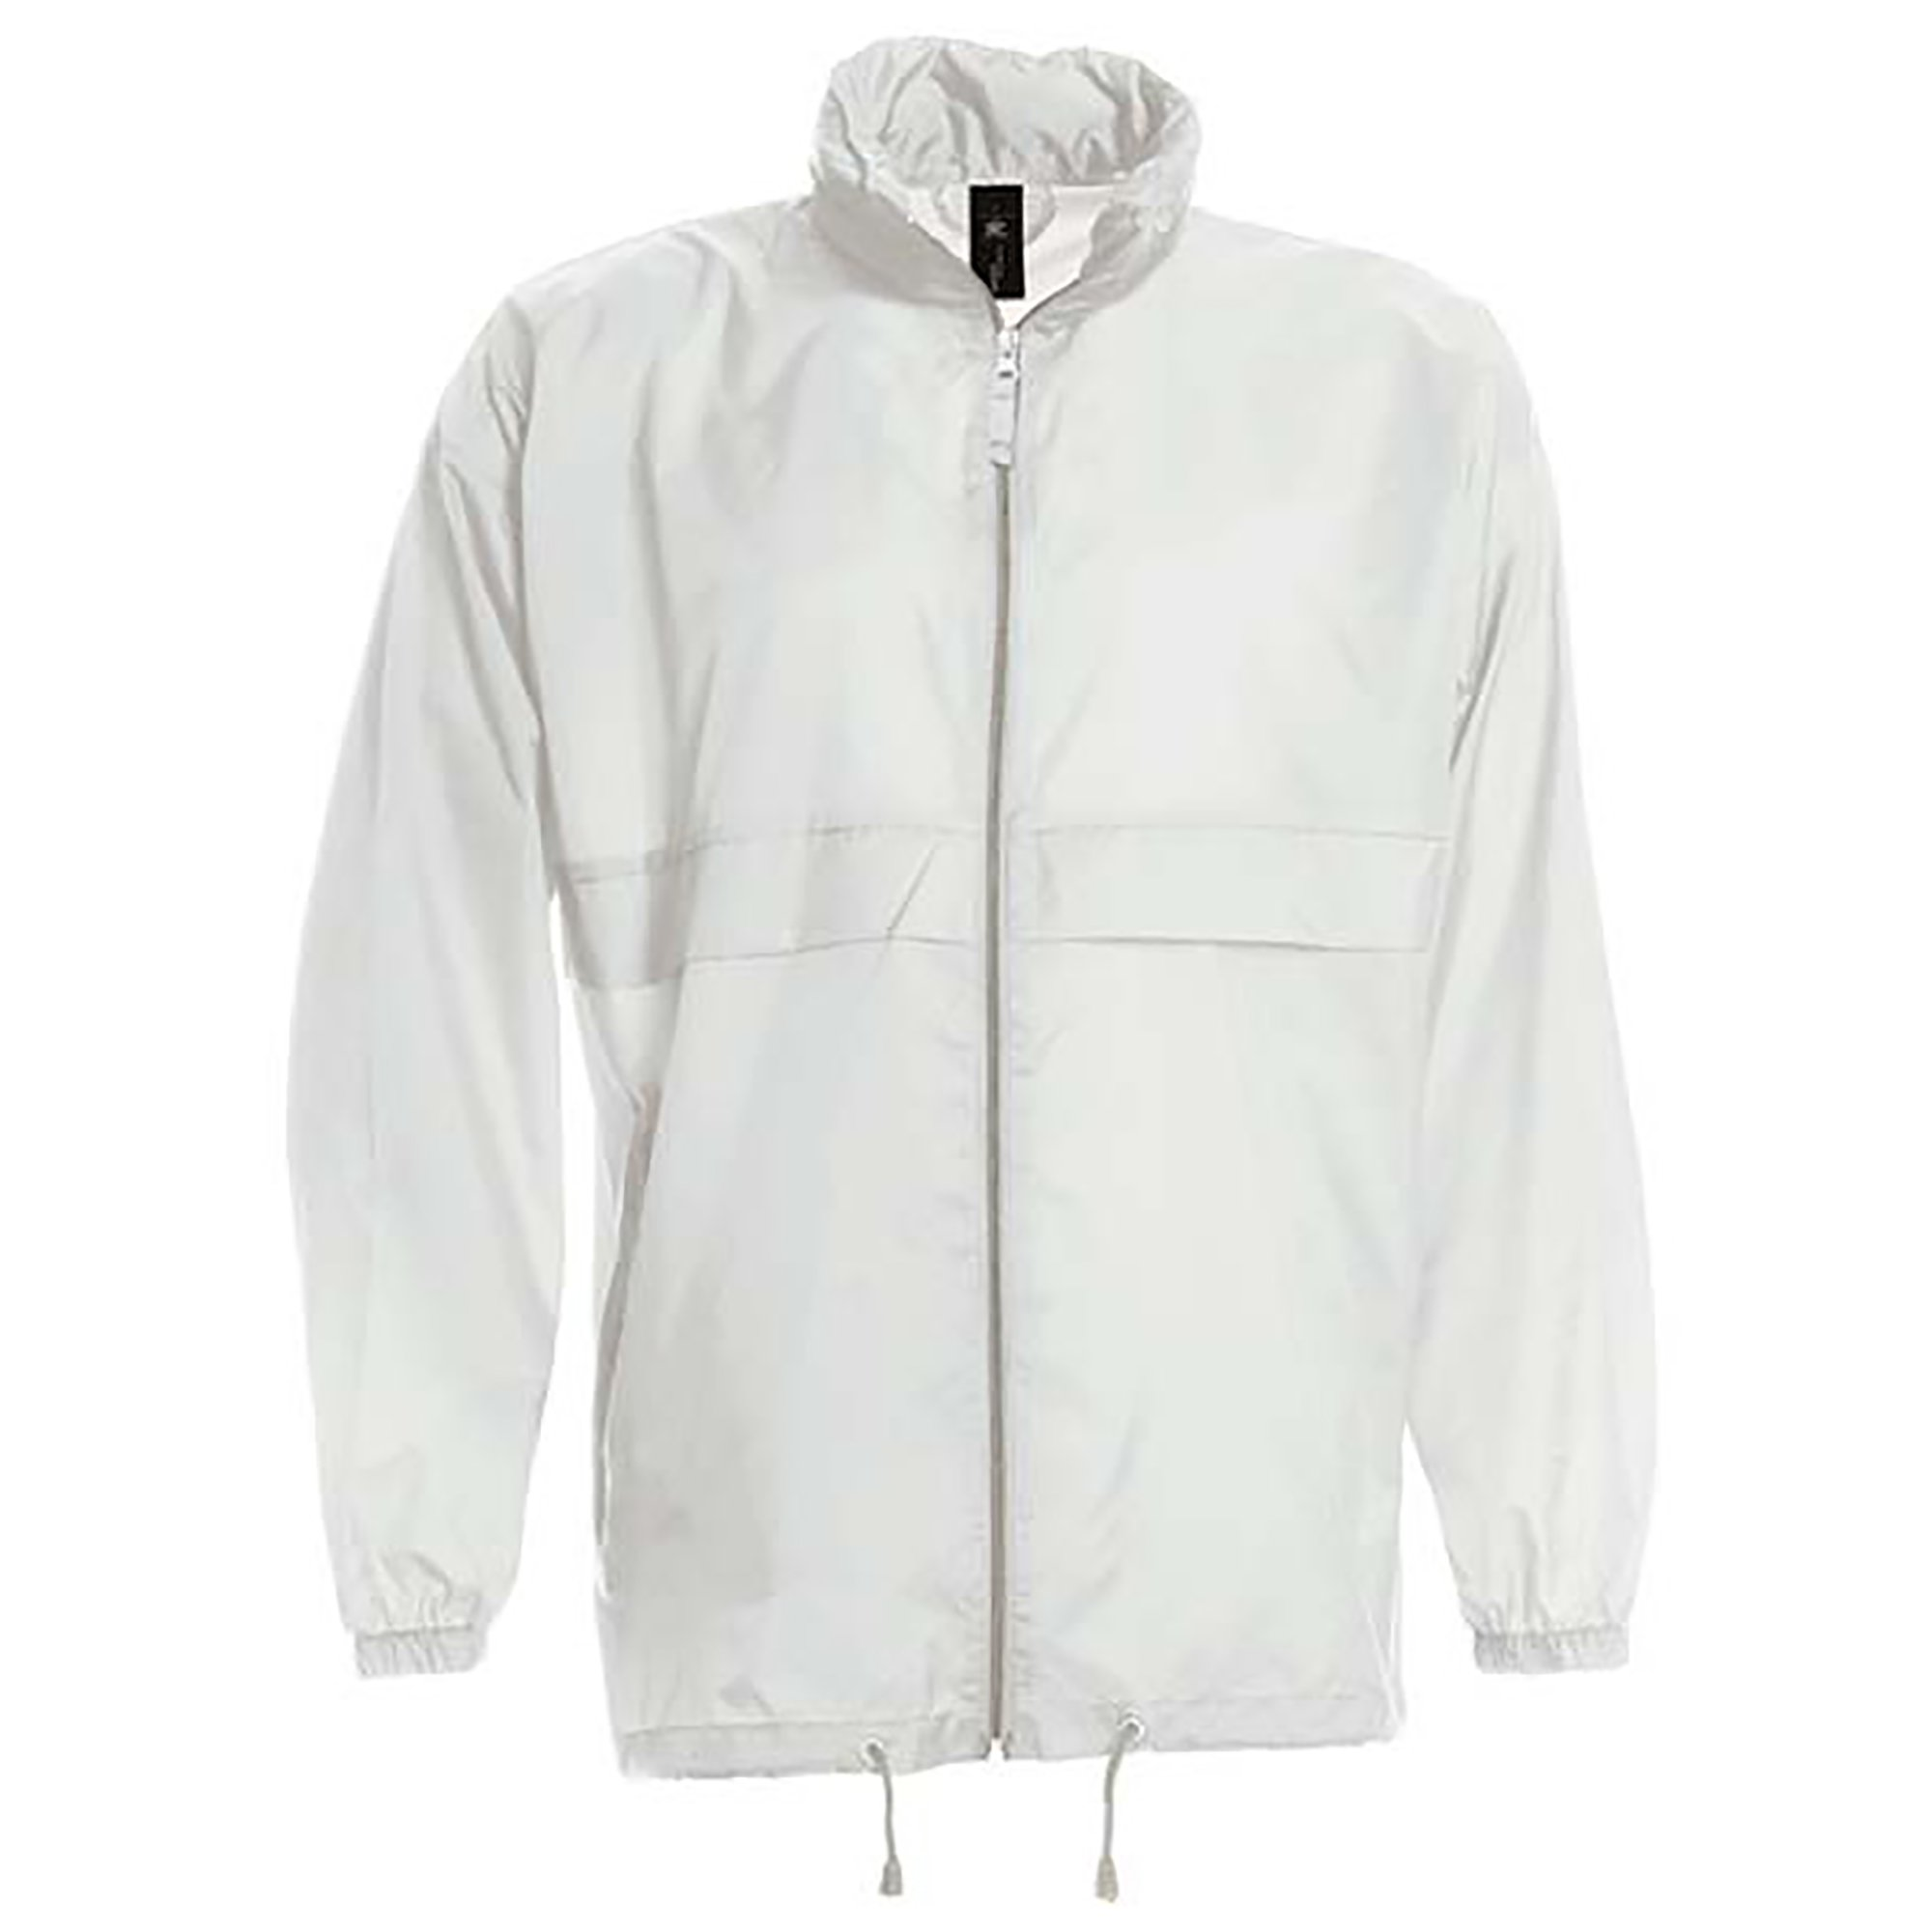 B&C Sirocco Mens Lightweight Jacket/Mens Outer Jackets (S) (White)